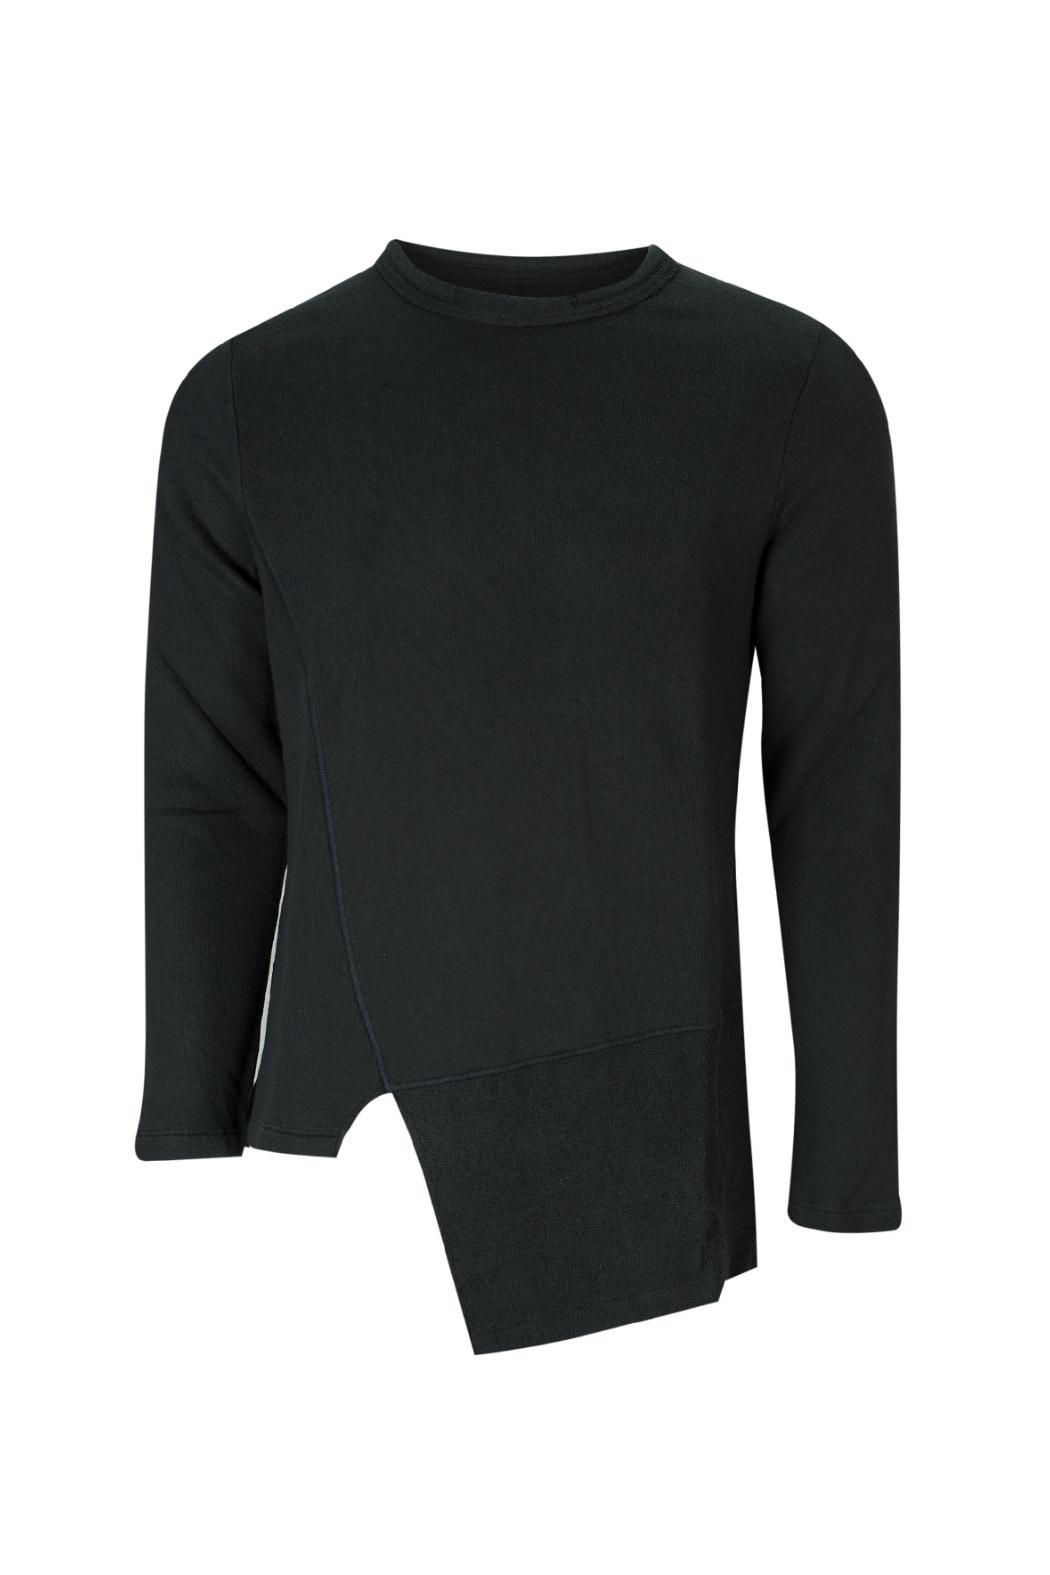 Syngman Cucala Asymmetric Sweater - Front Cropped Image